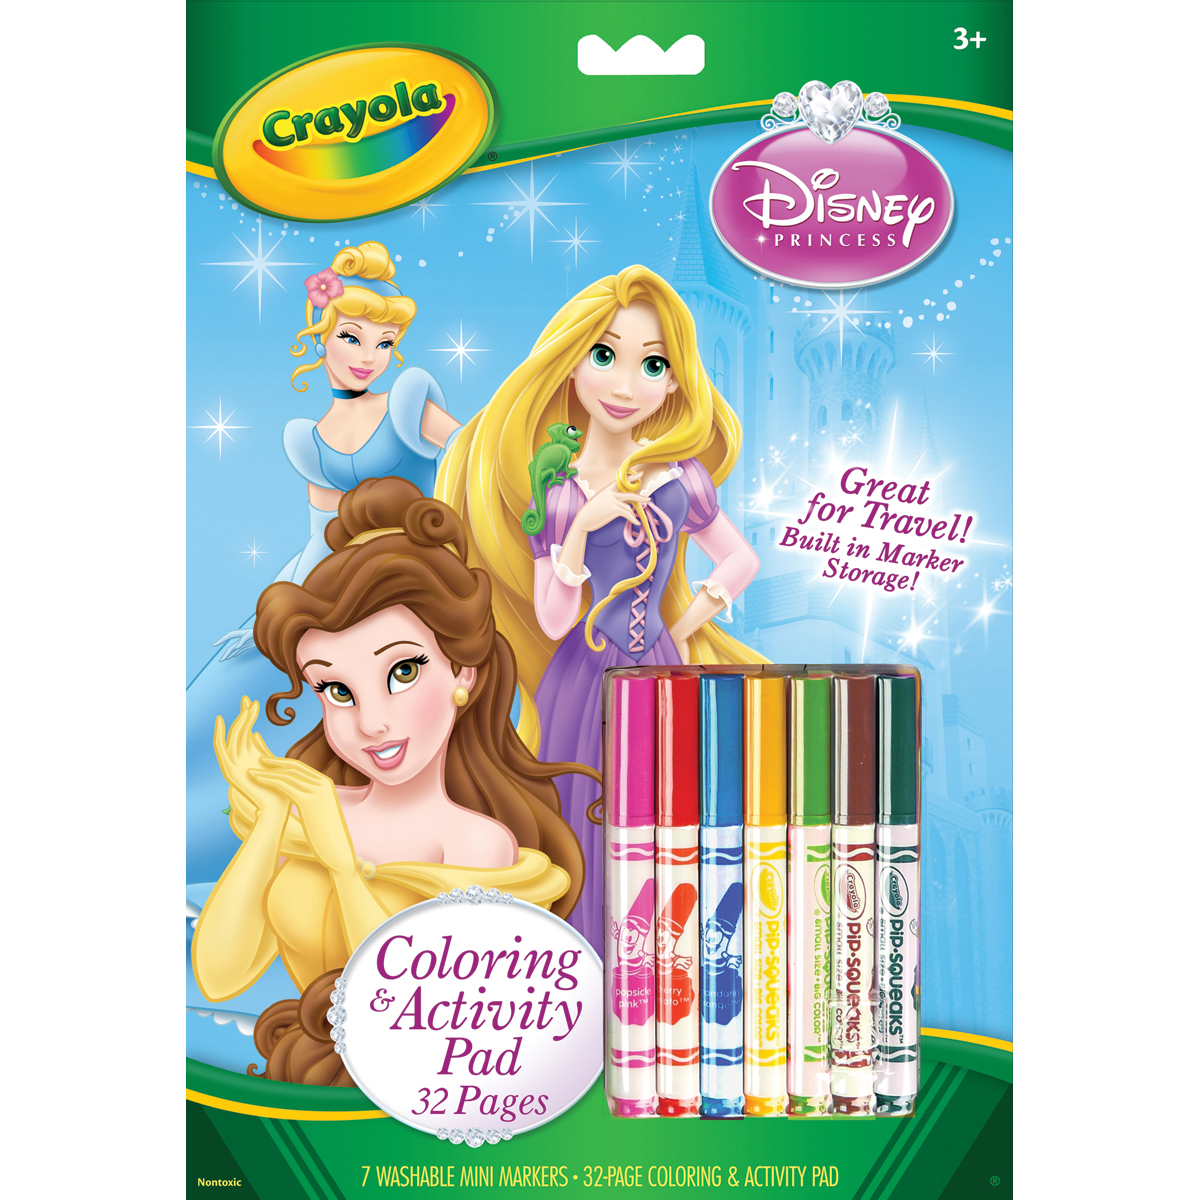 Crayola Coloring & Activity Pad W/Markers-Disney Princess